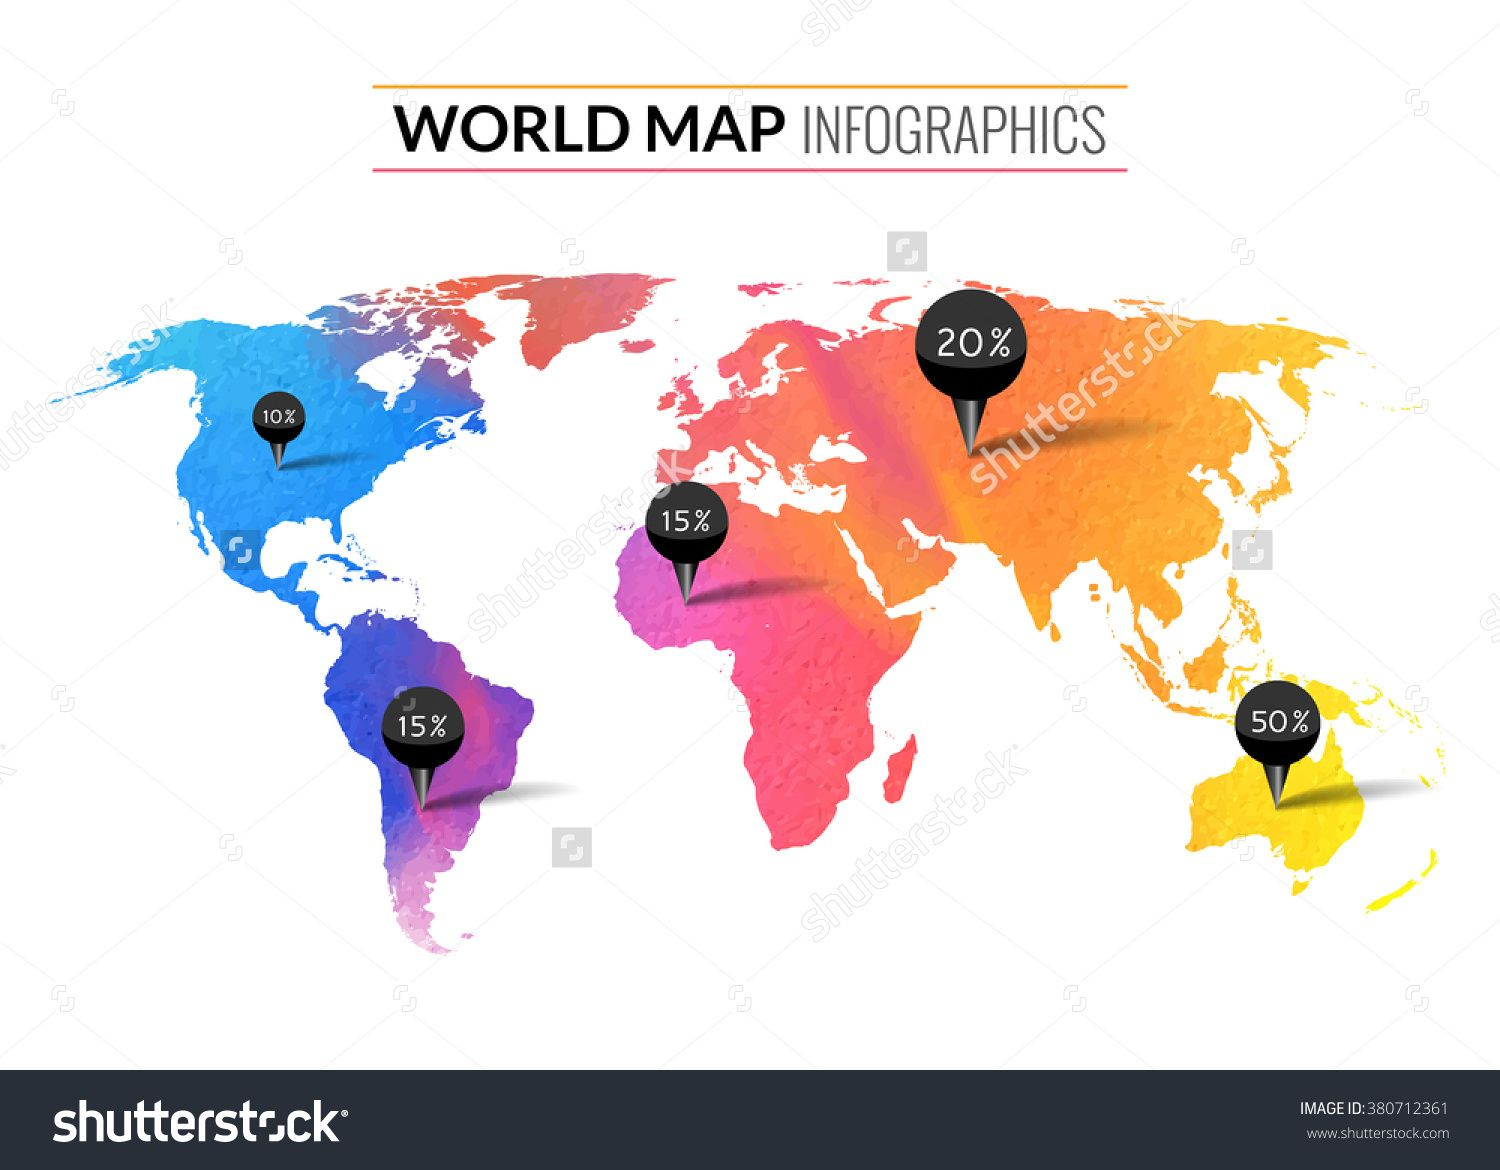 Imageutterstock z stock vector colorful vector watercolor colorful vector watercolor world map infographics world map wallpaper atlas travel earth buy this stock vector on shutterstock find other images gumiabroncs Image collections